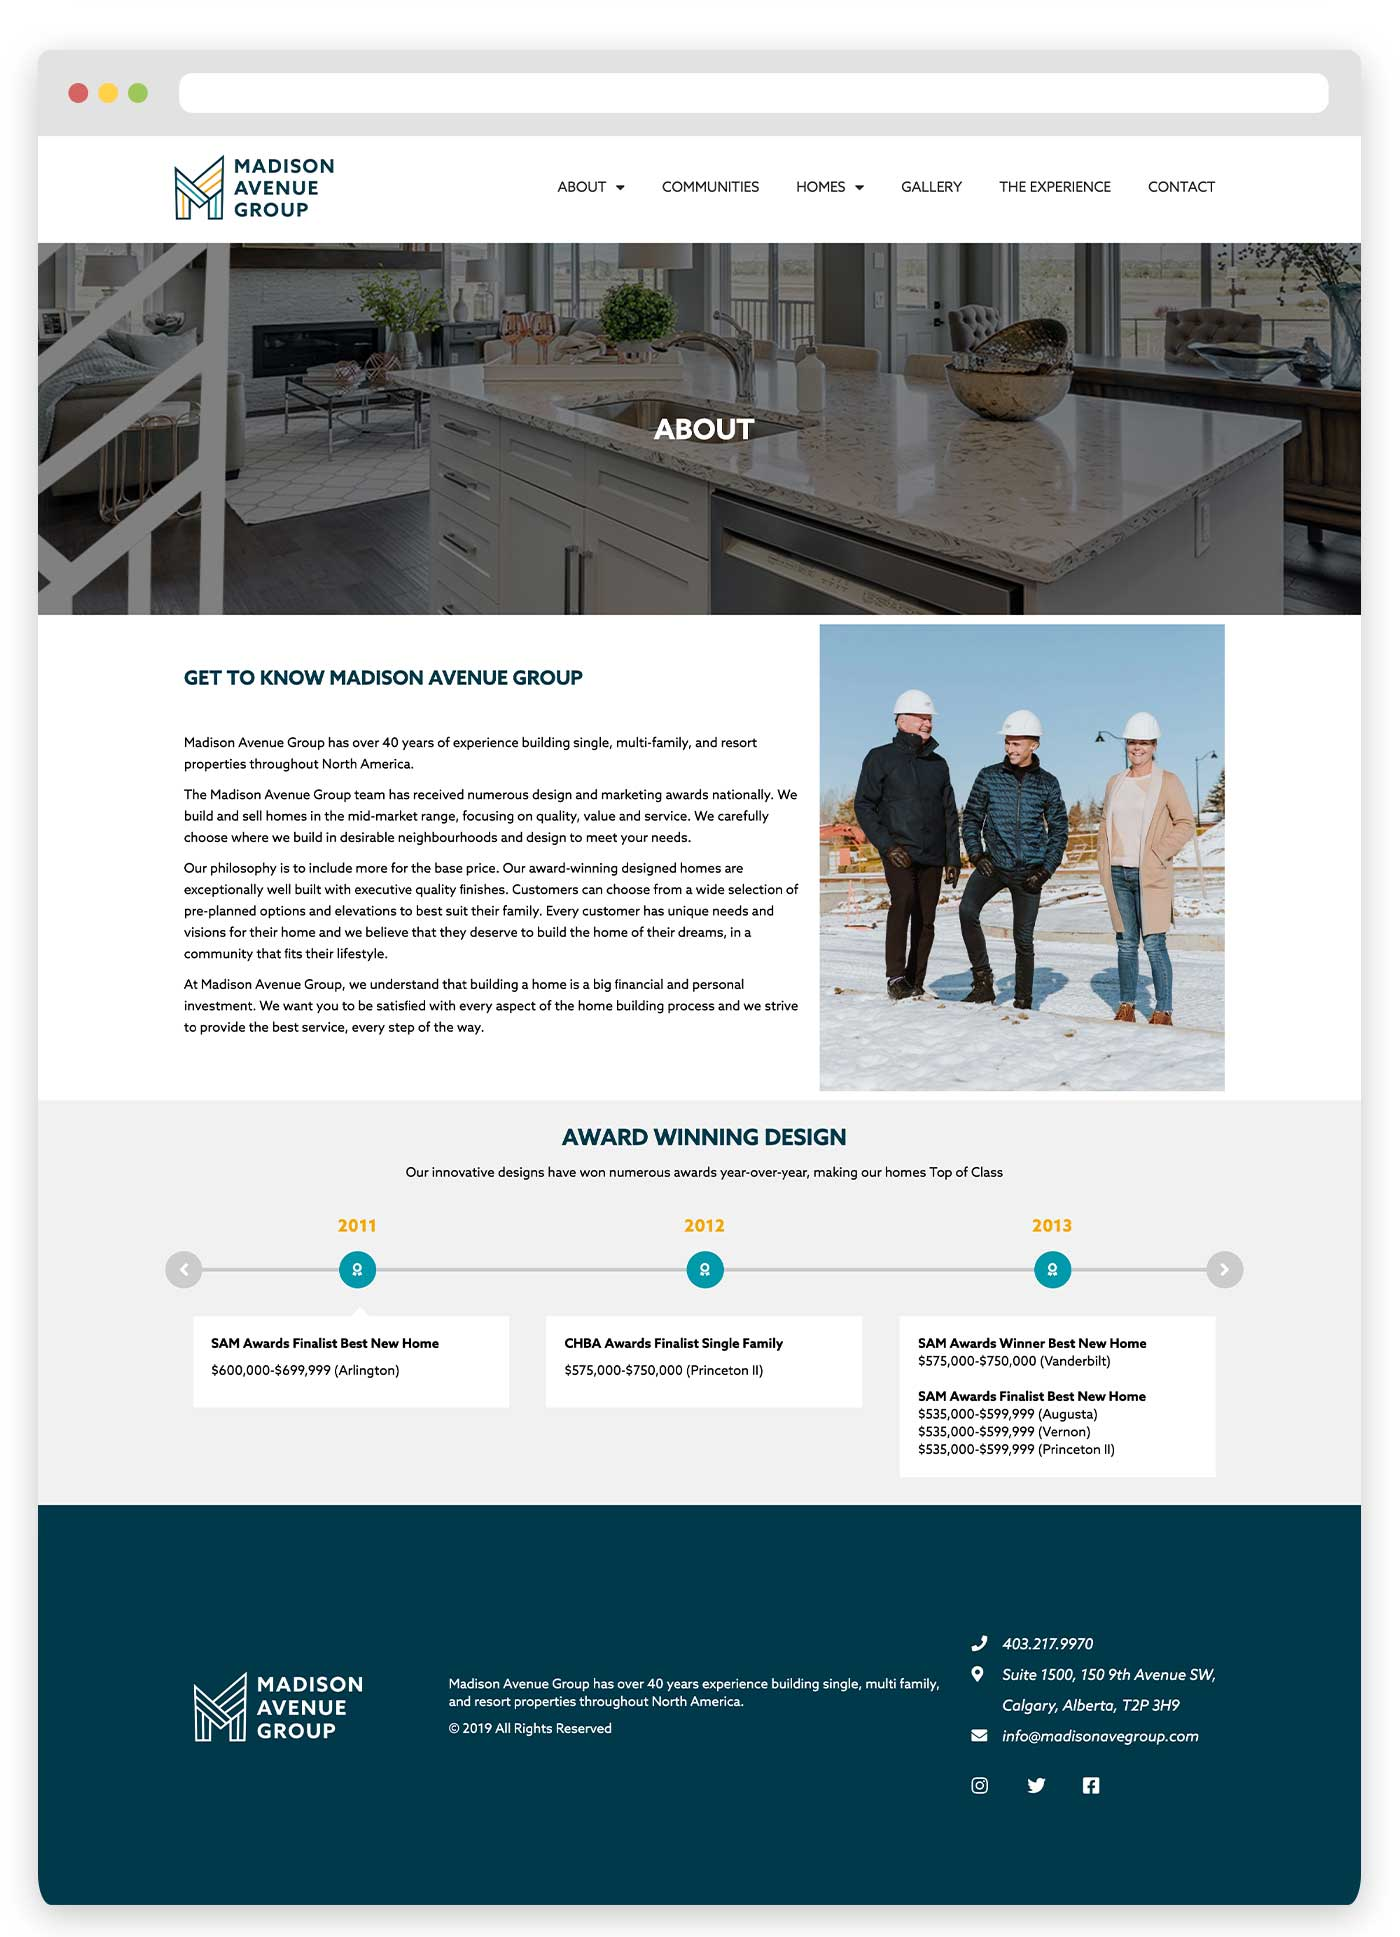 Madison Avenue Group About Page, Calgary Home Builder, Iva Kezic Website Design